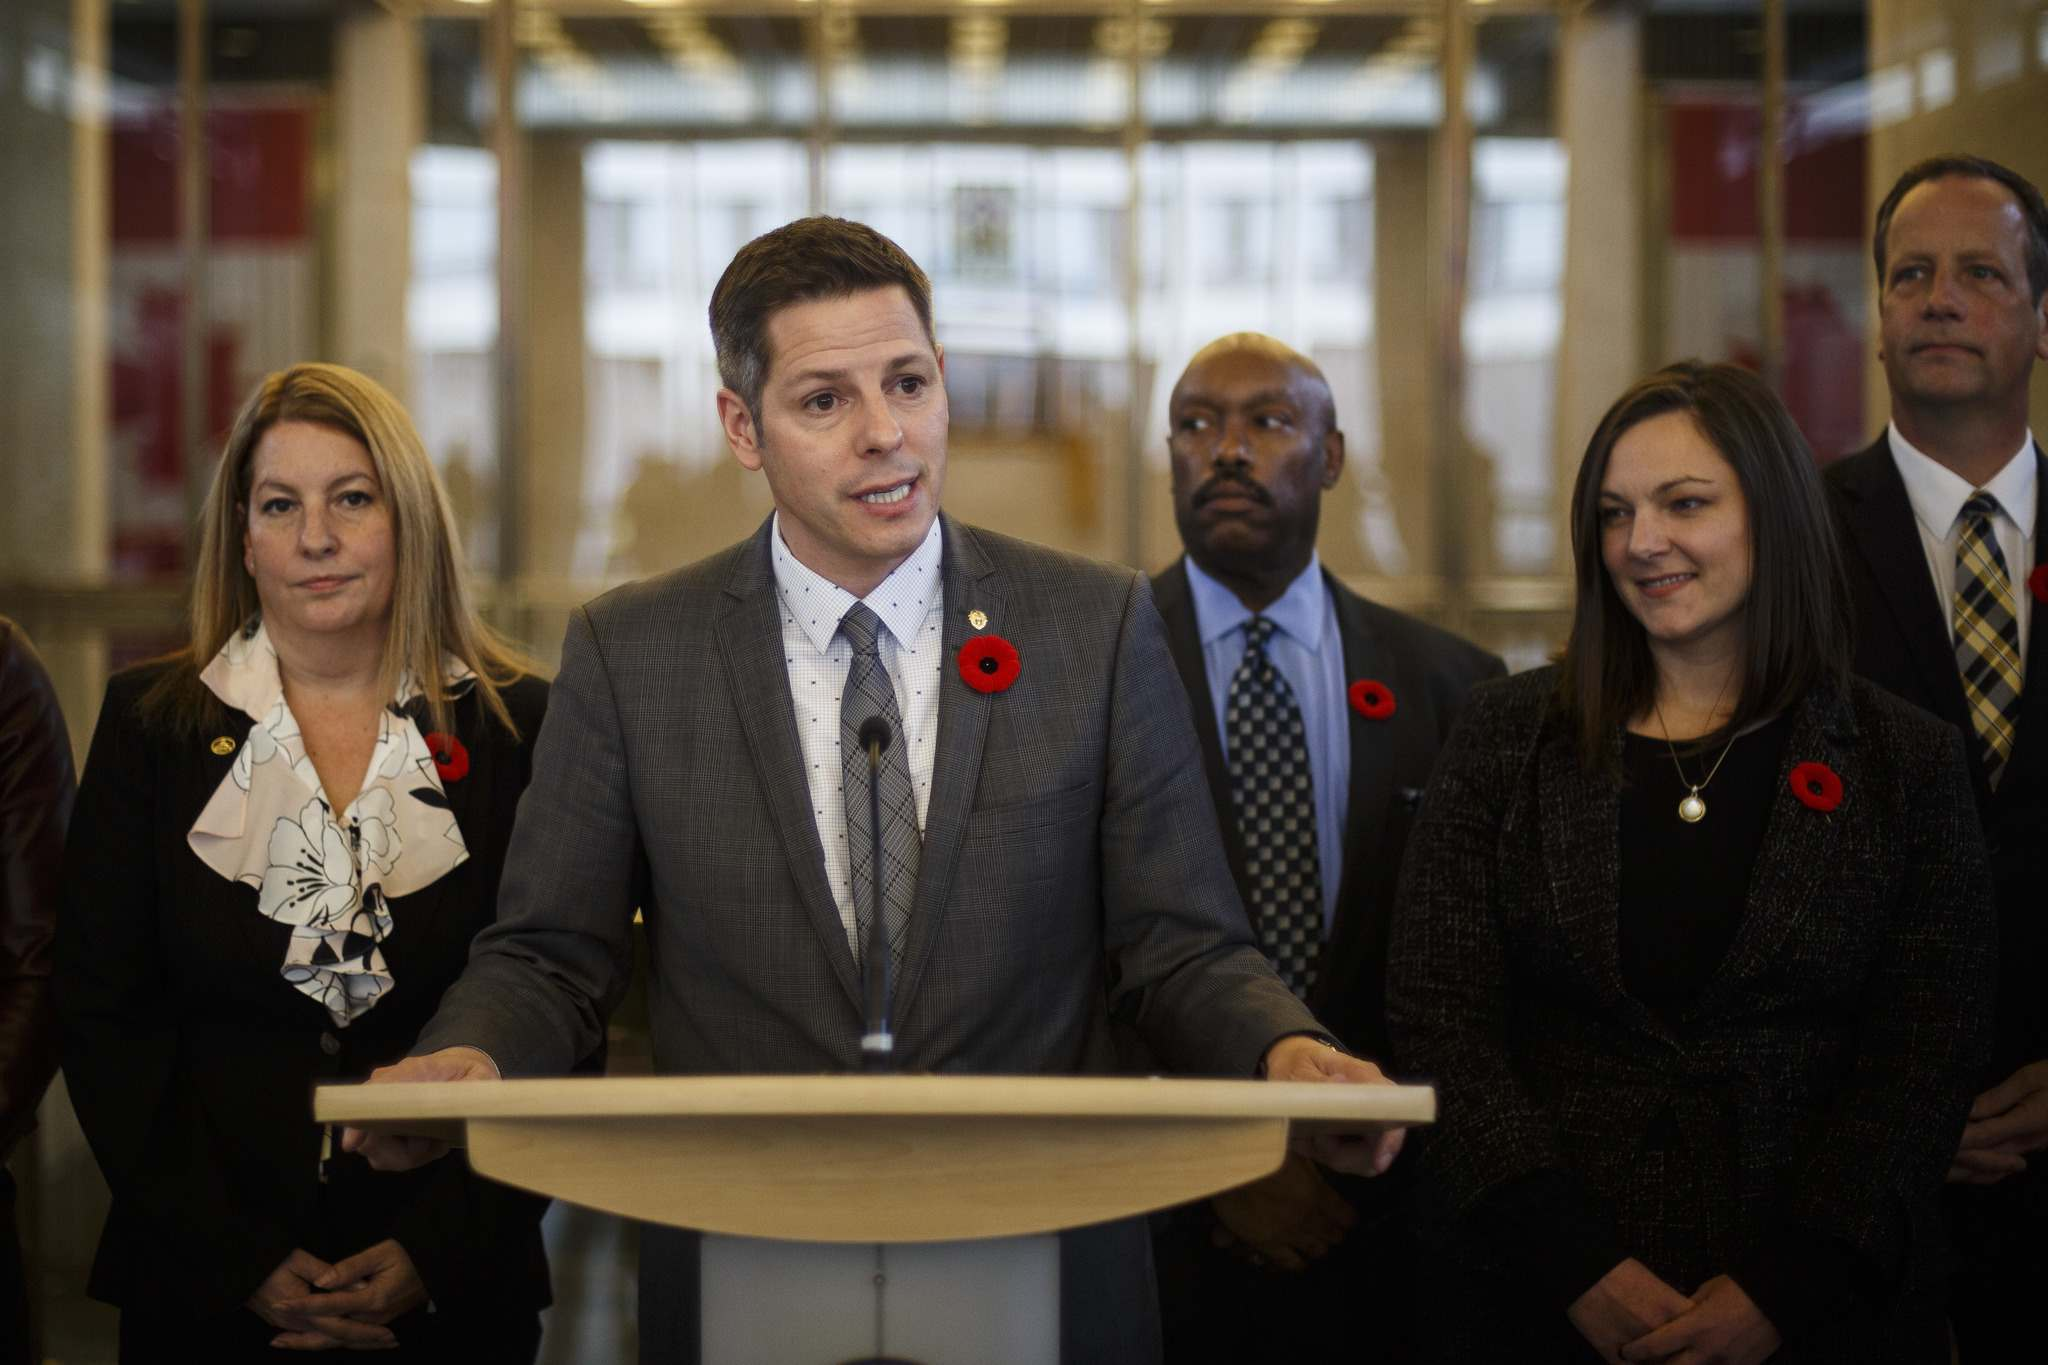 MIKE DEAL / WINNIPEG FREE PRESS</p><p>Mayor Brian Bowman announces his appointments to the executive policy committee, and his selections for Deputy Mayor and Acting Deputy Mayor at City Hall Monday afternoon. </p>